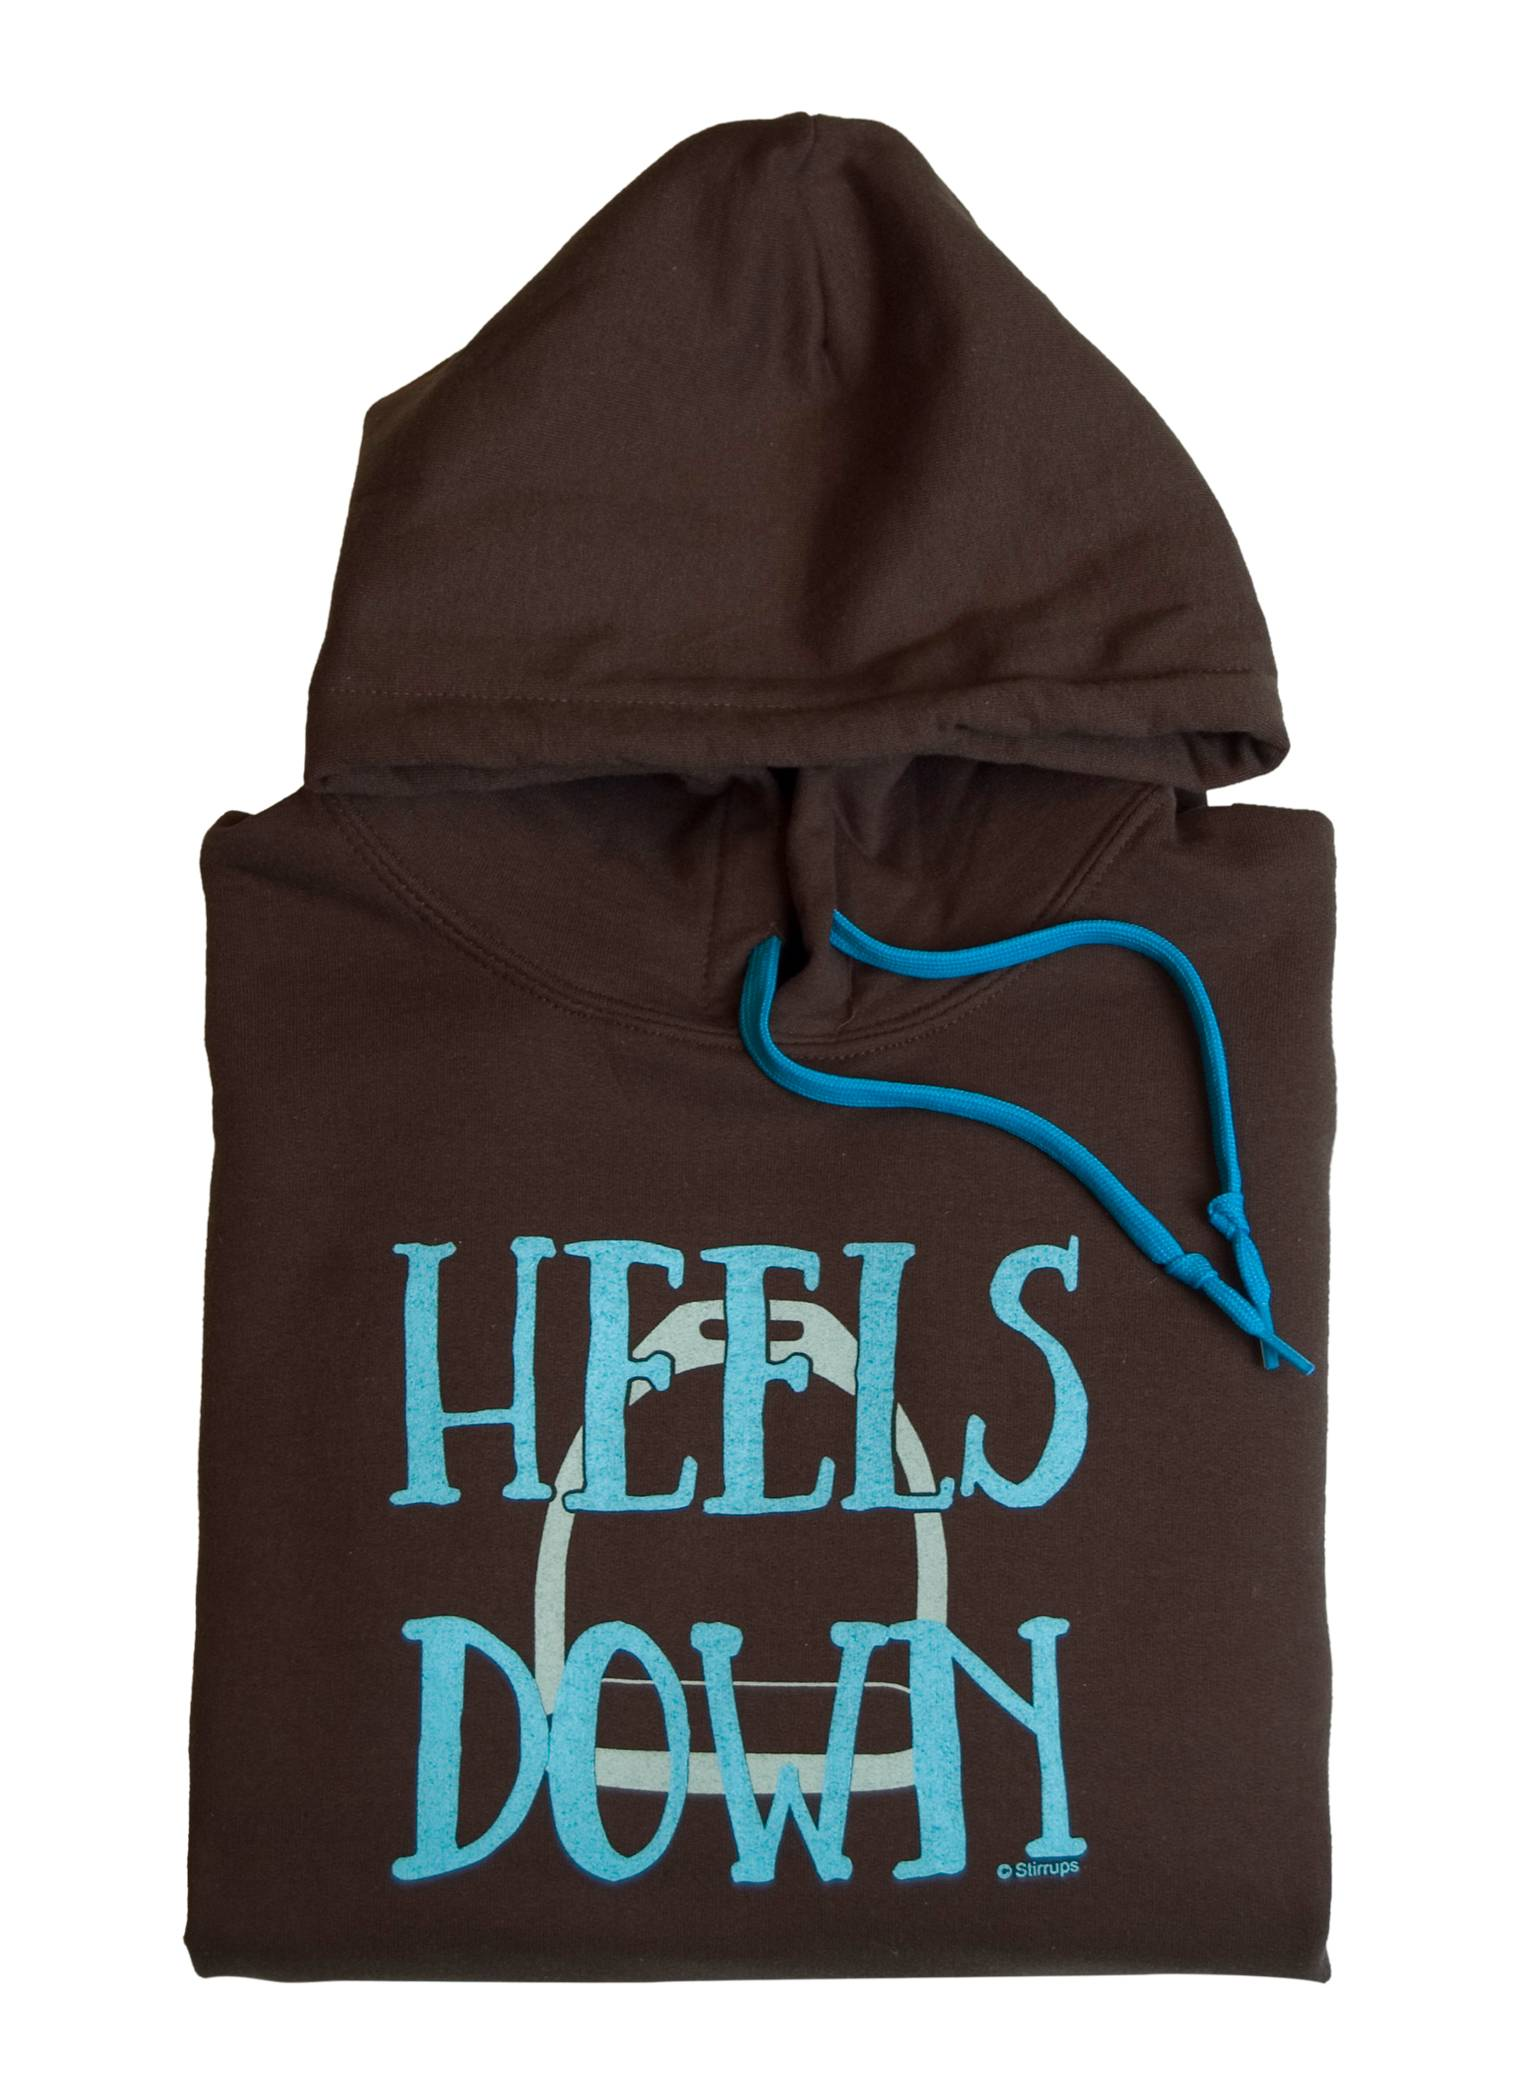 Stirrups Heels Down Hooded Sweatshirt - Ladies